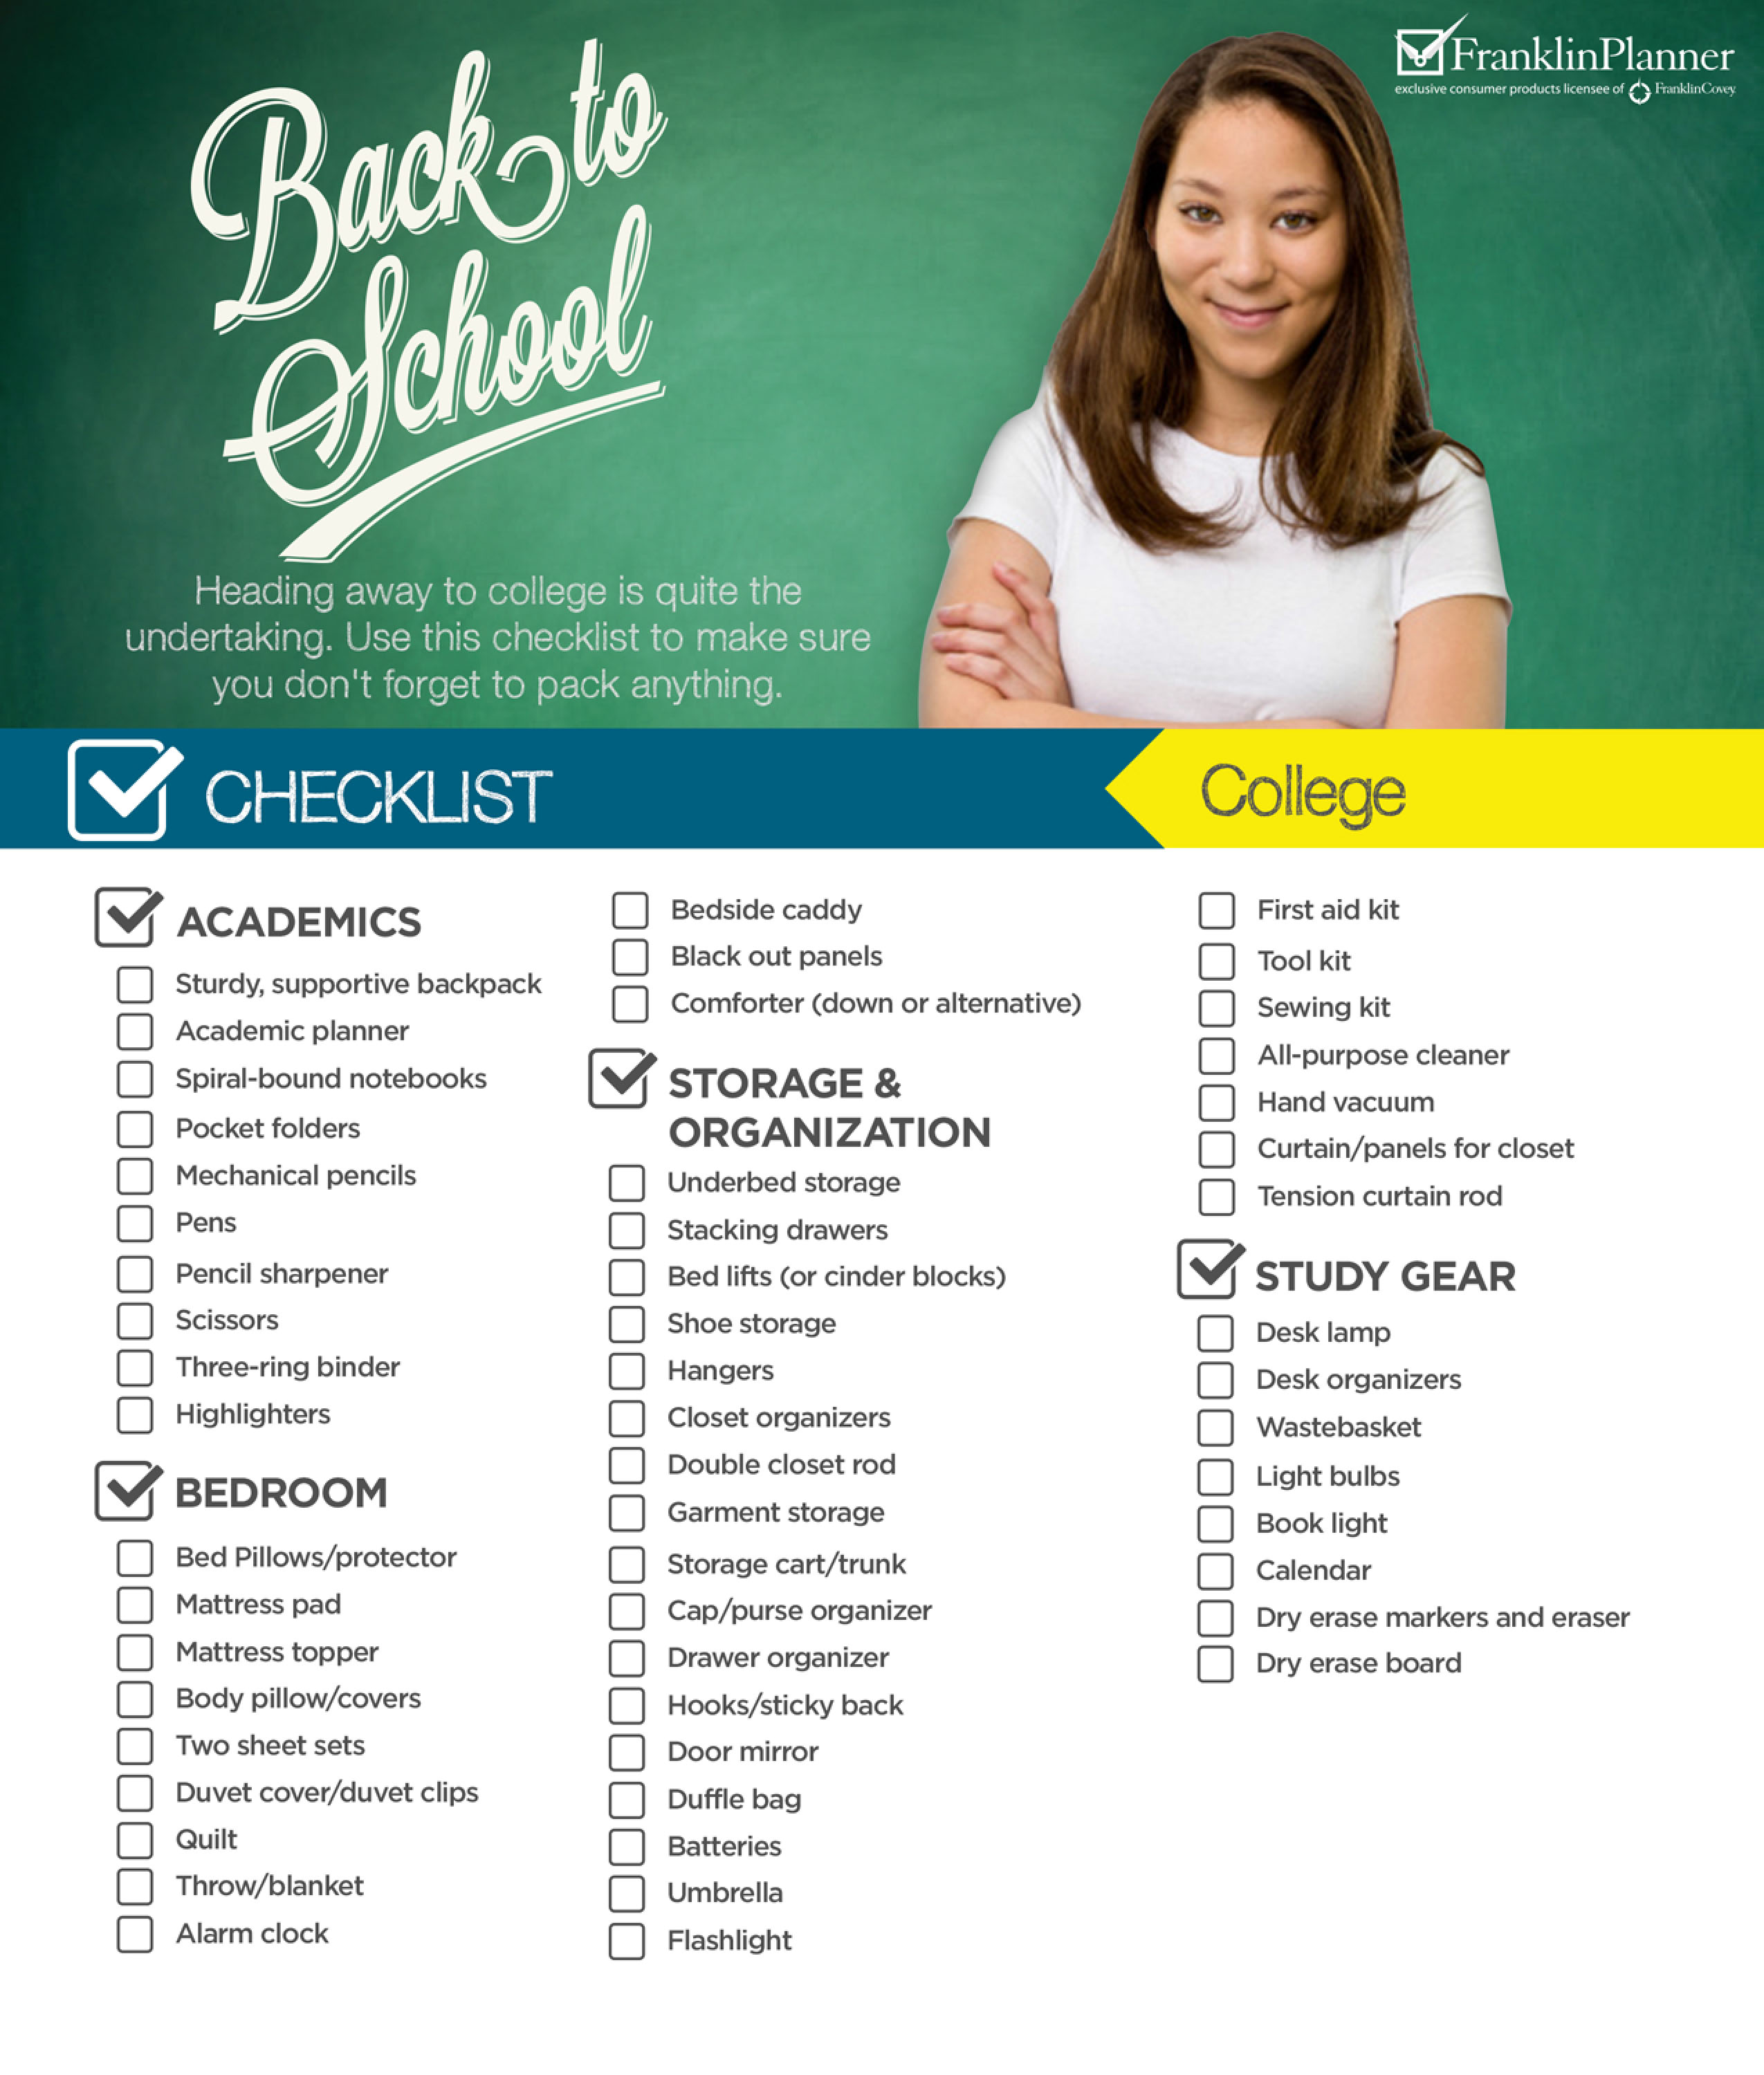 1402041 Back to School Catalog Checklist FINAL (College)-1